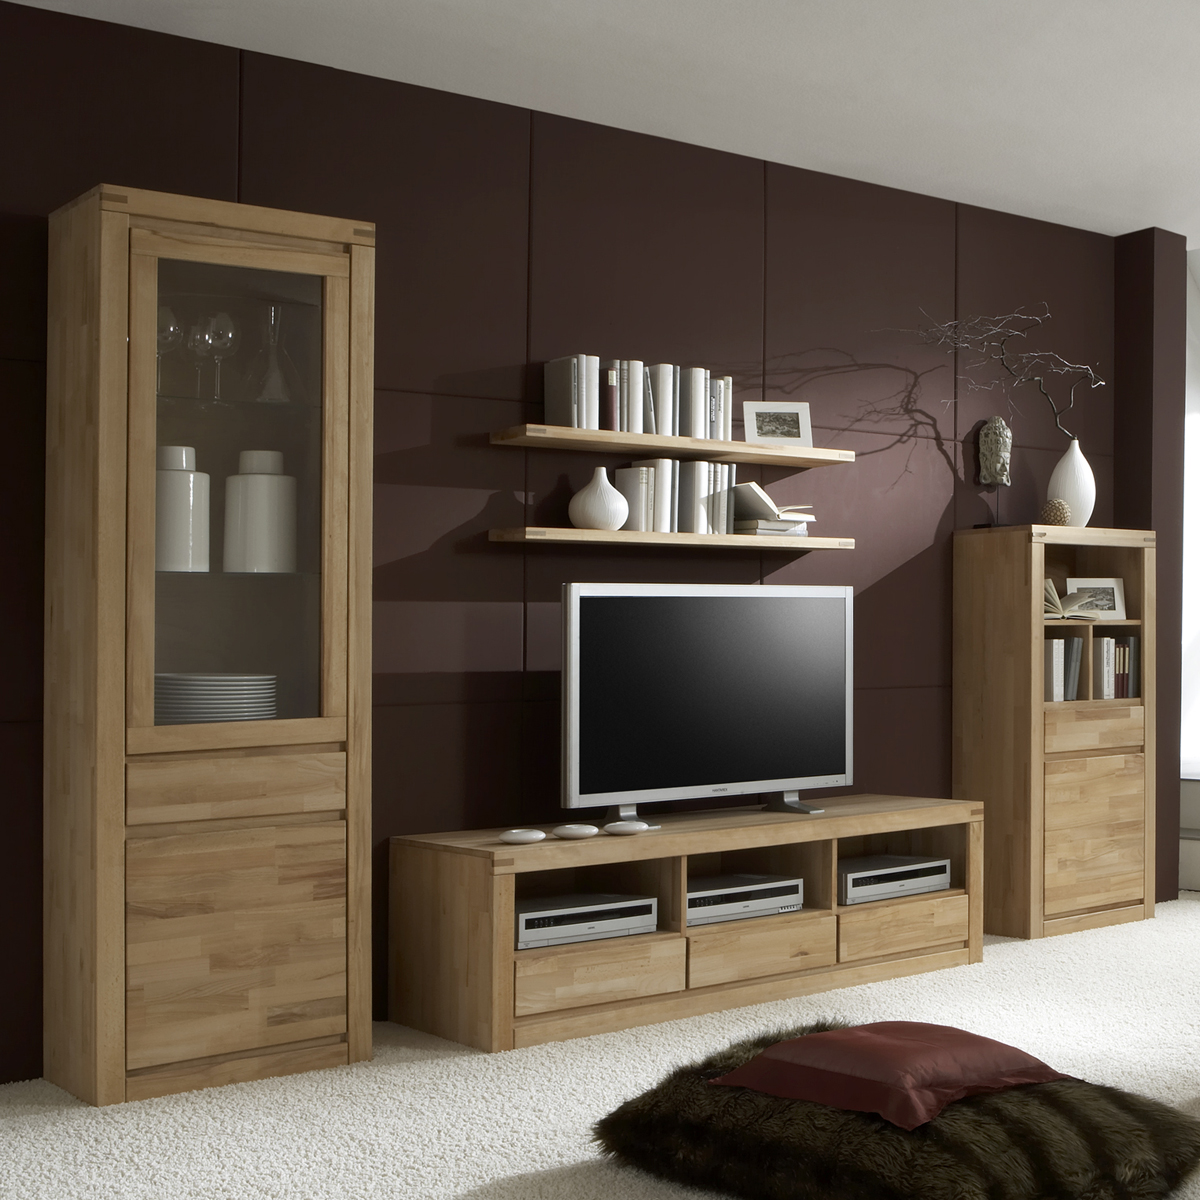 wohnwand delft 2 wohnzimmer anbauwand in kernbuche massiv ge lt ebay. Black Bedroom Furniture Sets. Home Design Ideas